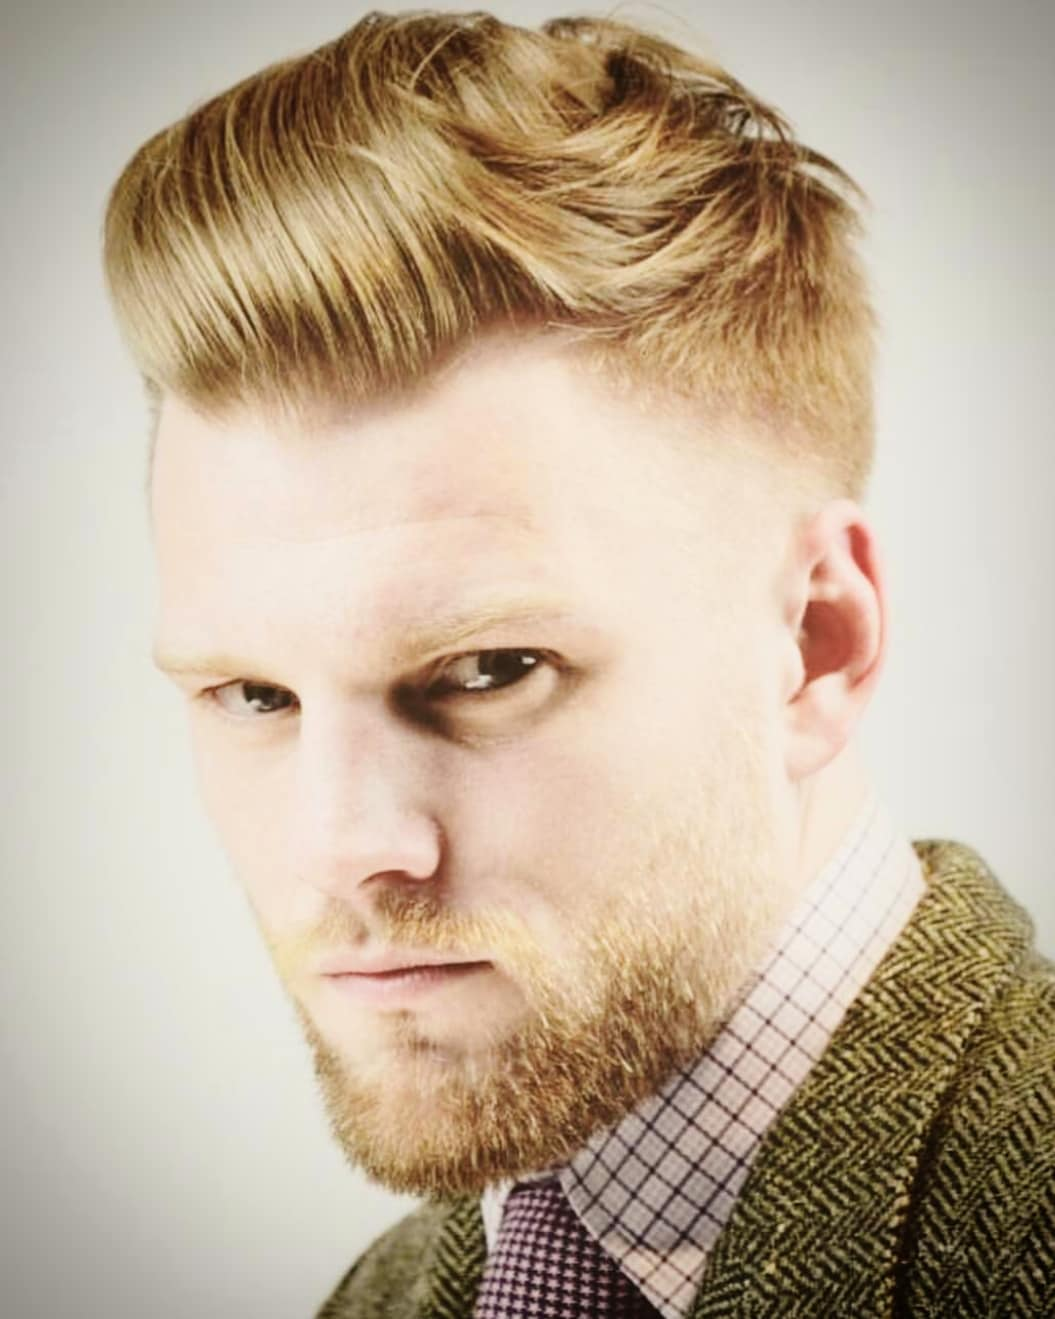 Classic barbering meets modern styling by Ross